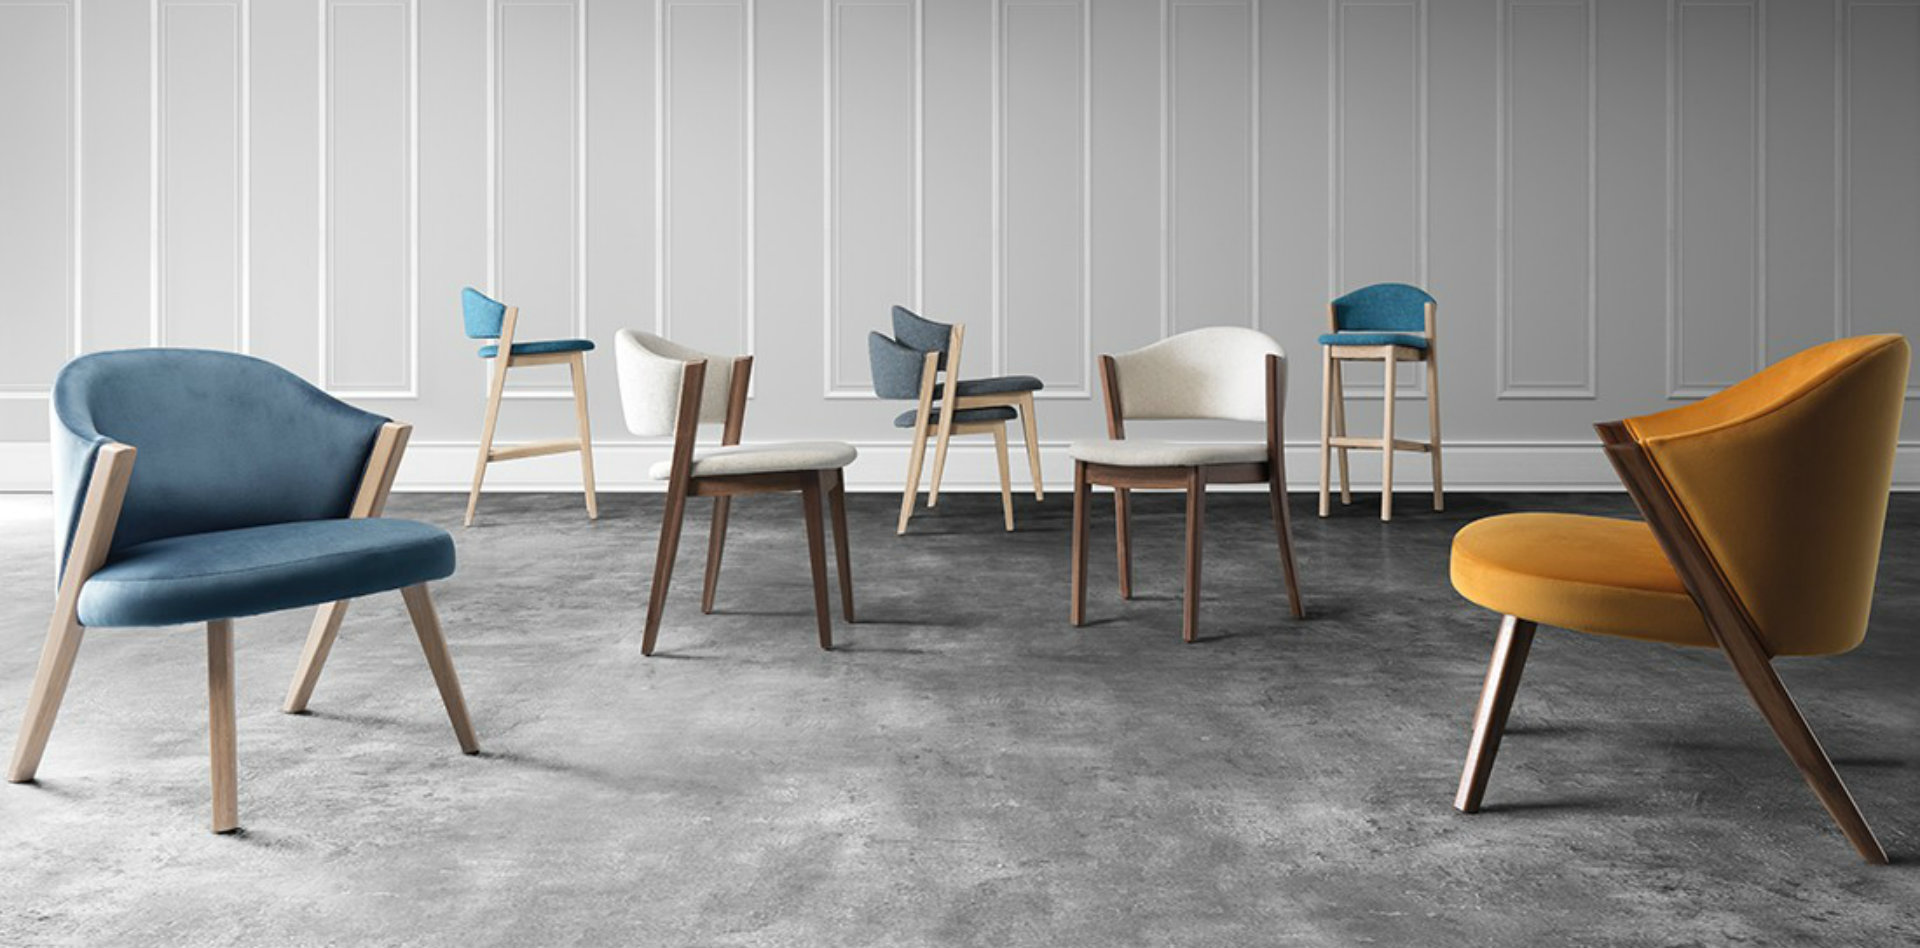 5 unique chairs that you will love in Maison et Objet 2018 maison et objet 5 Unique Chairs That You Will Love in Maison et Objet 2018 imagem 2